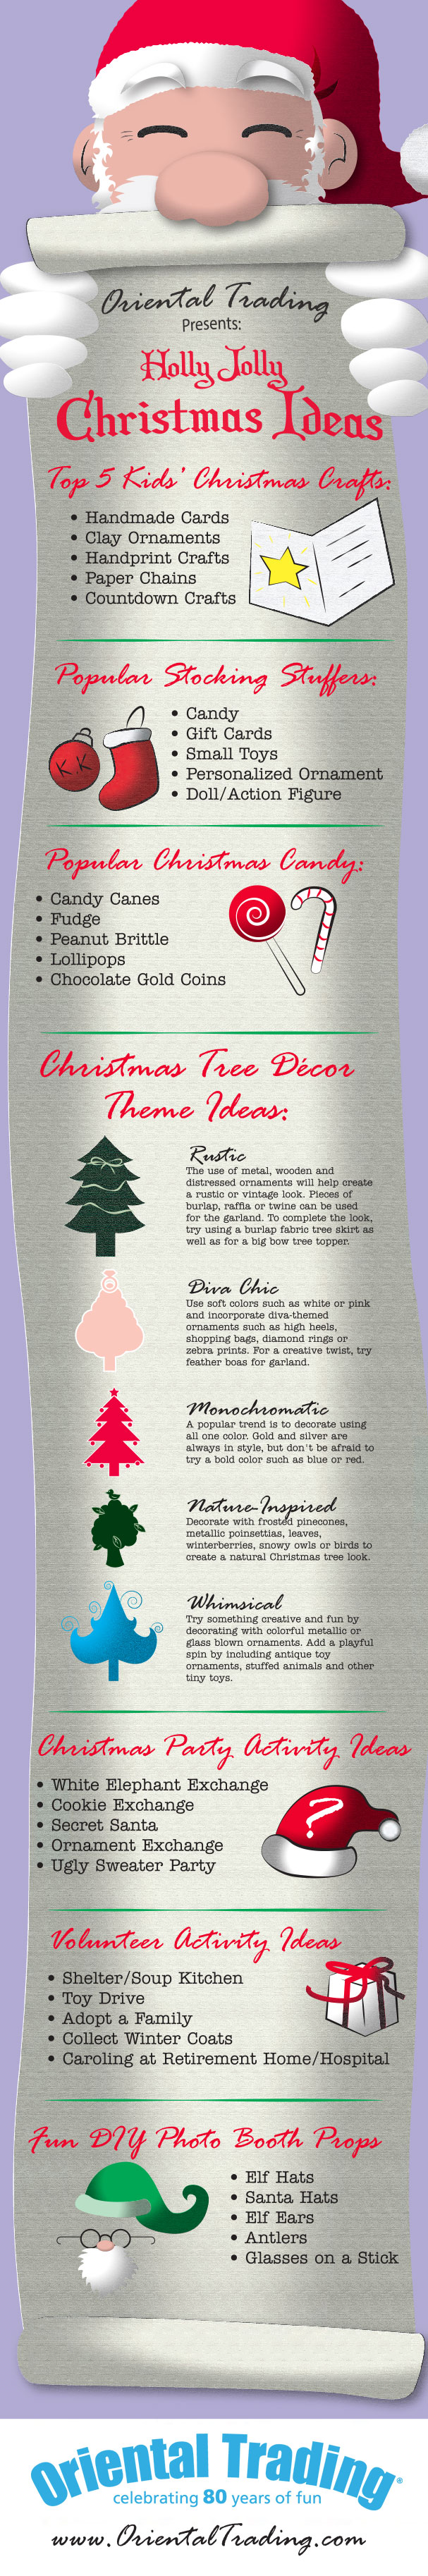 Christmas Party Ideas Infographic by OrientalTrading.com